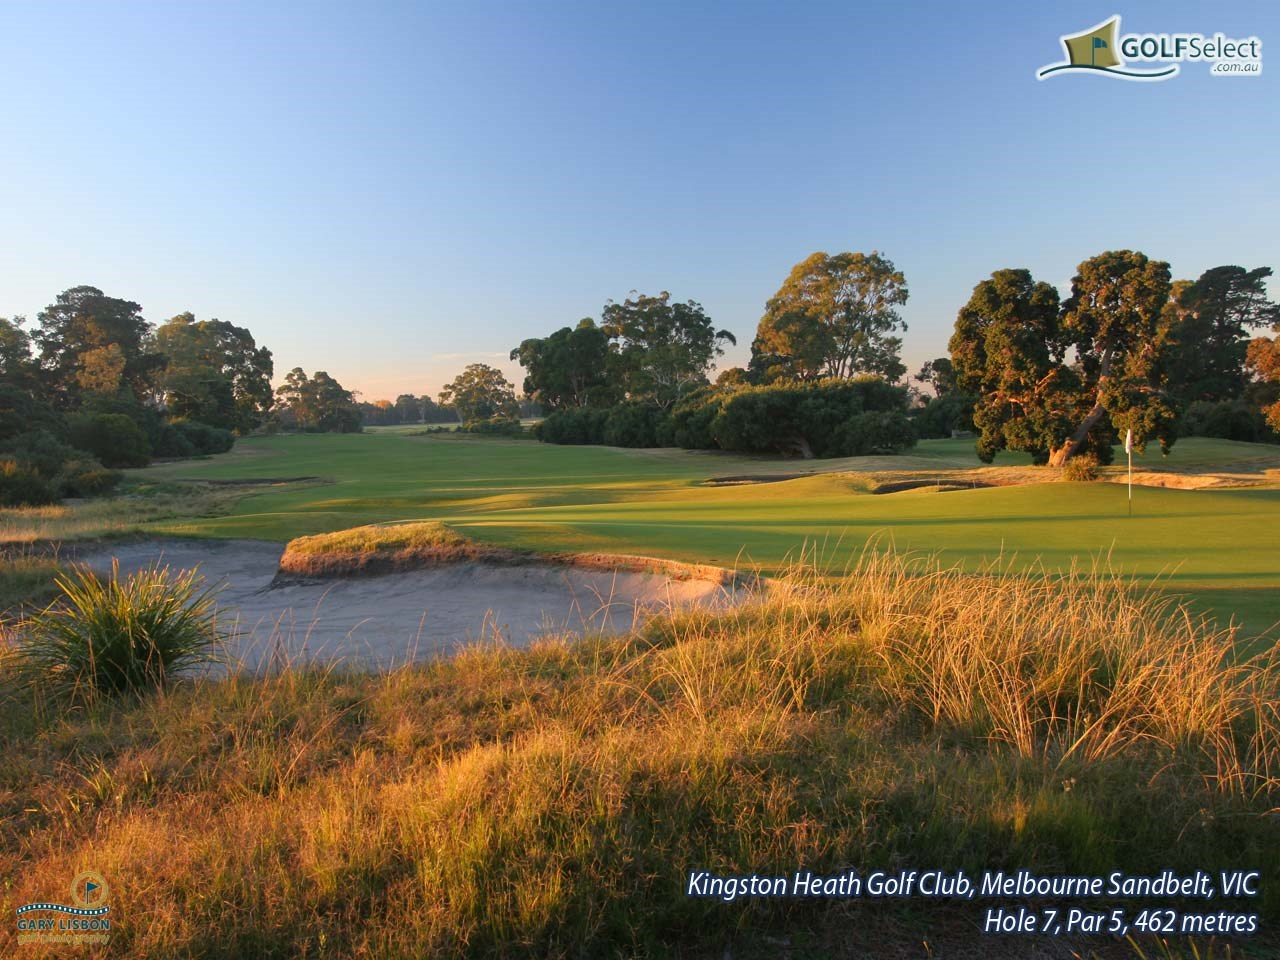 Kingston Heath Golf Club Hole 7, Par 5, 462 metres